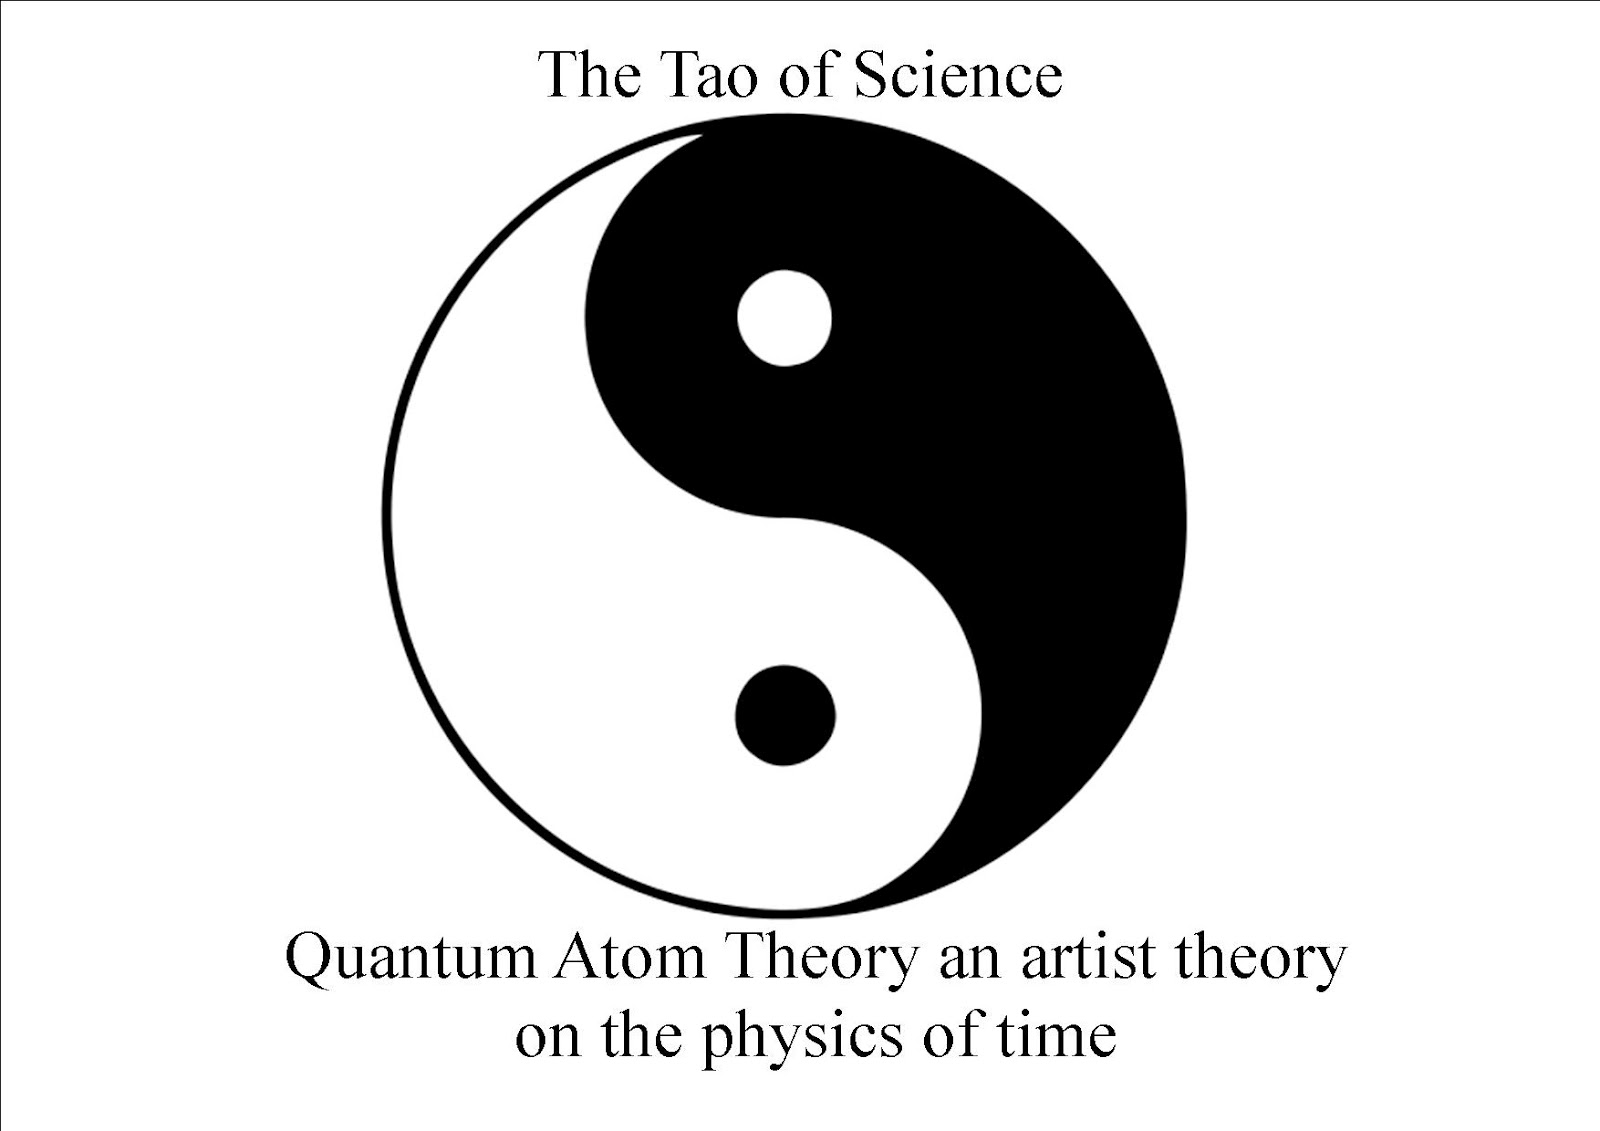 Quantum art and poetry the tao of science quantum atom theory in taoism there is a dynamic interplay between the polar opposites of yin and yang there is also a belief that any pair of opposites is dynamically linked buycottarizona Images